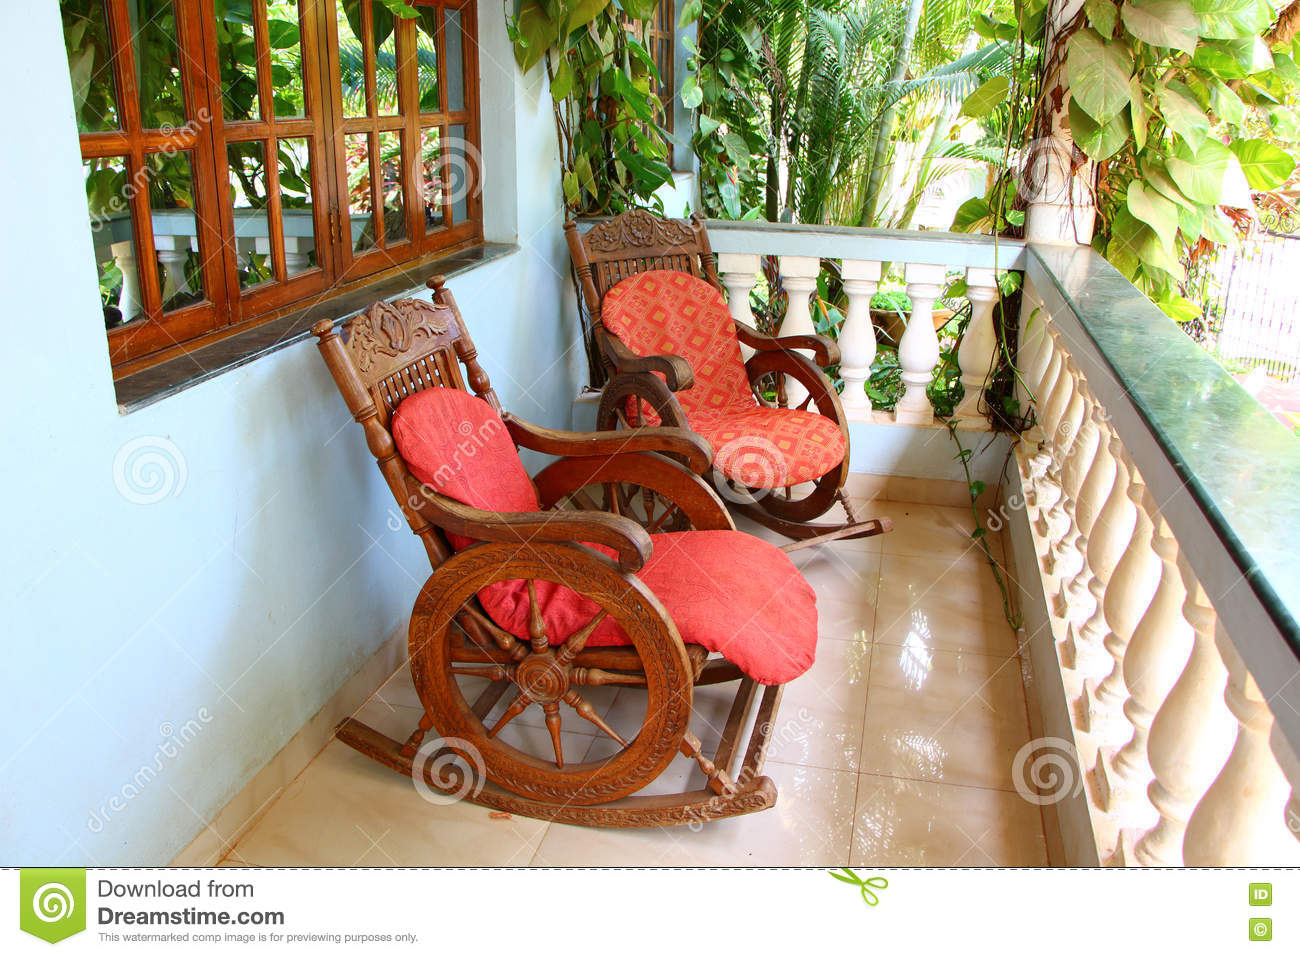 floor rocking chair india safavieh dining chairs target on the veranda stock photo image of resort south palm terrace in hotel marble furniture porch